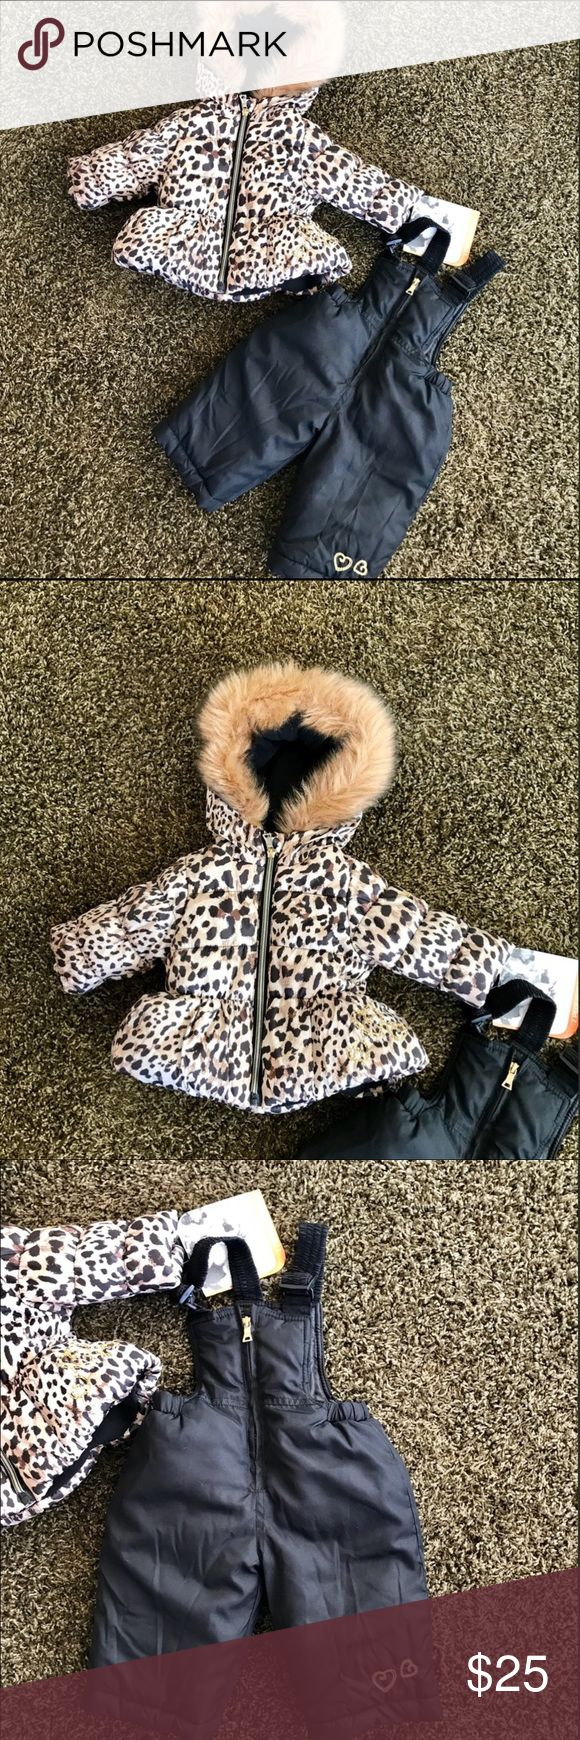 Pacific Trail Snow Suit - sz 6m - Brand New ❄️❄️ Pacific Trail Snow Suit - sz 6m - Brand New ❄️❄️ Darling Black and Brown Infant and Toddler Girls Cold Weather coat and Snow Pants Set . Fun animal print. Pacific Trail Matching Sets #infantsnowsuit